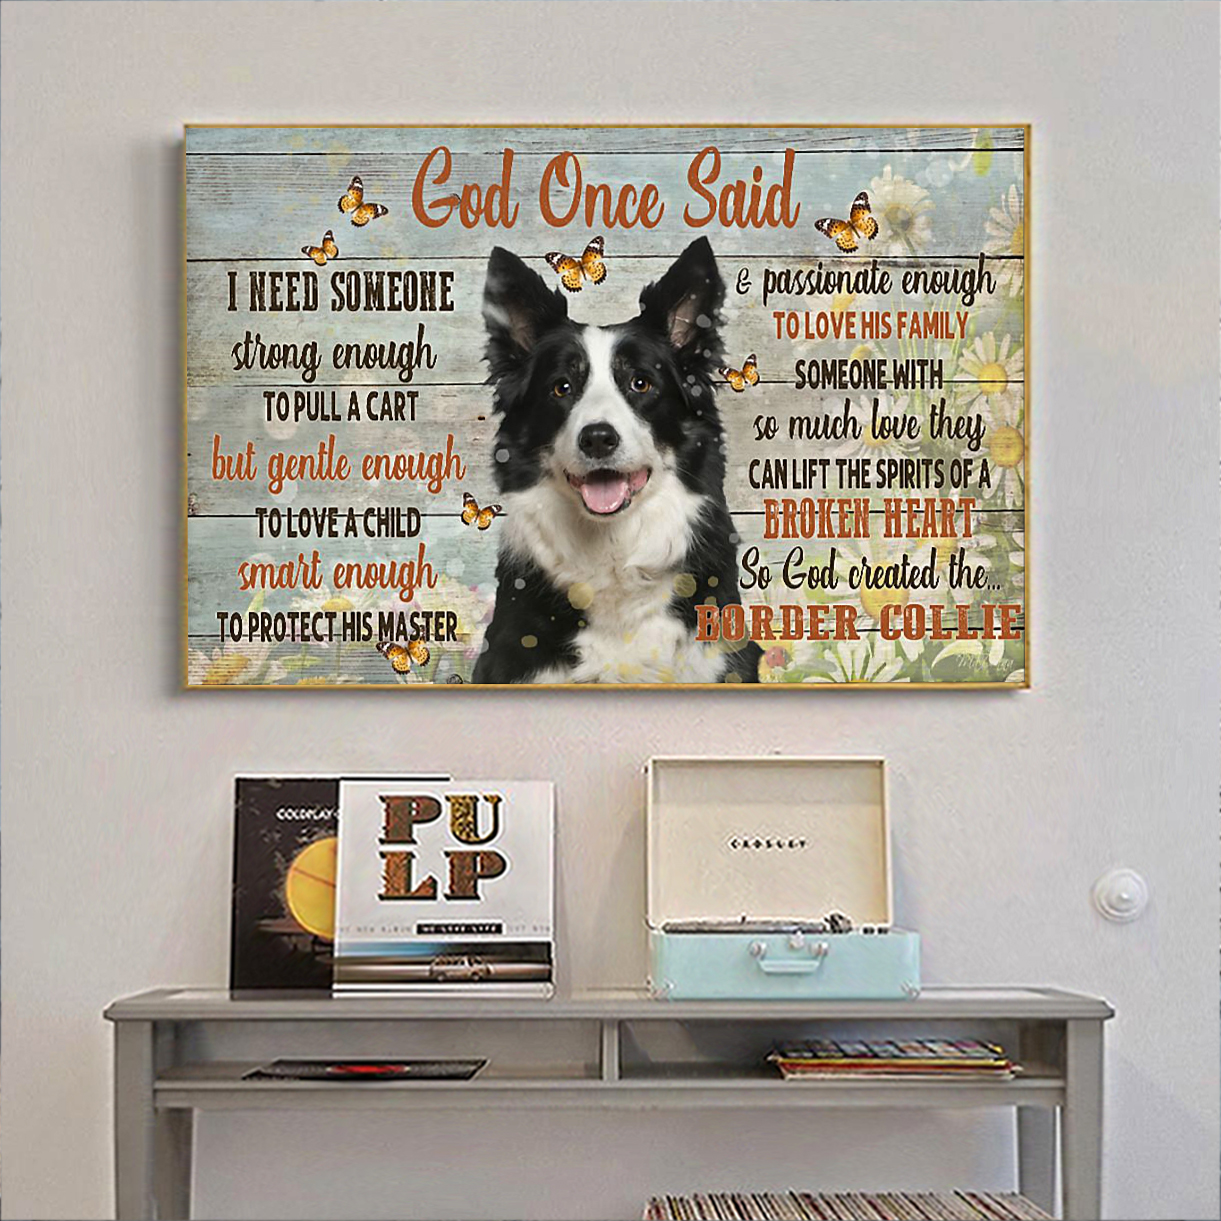 Border collie god once said poster A1